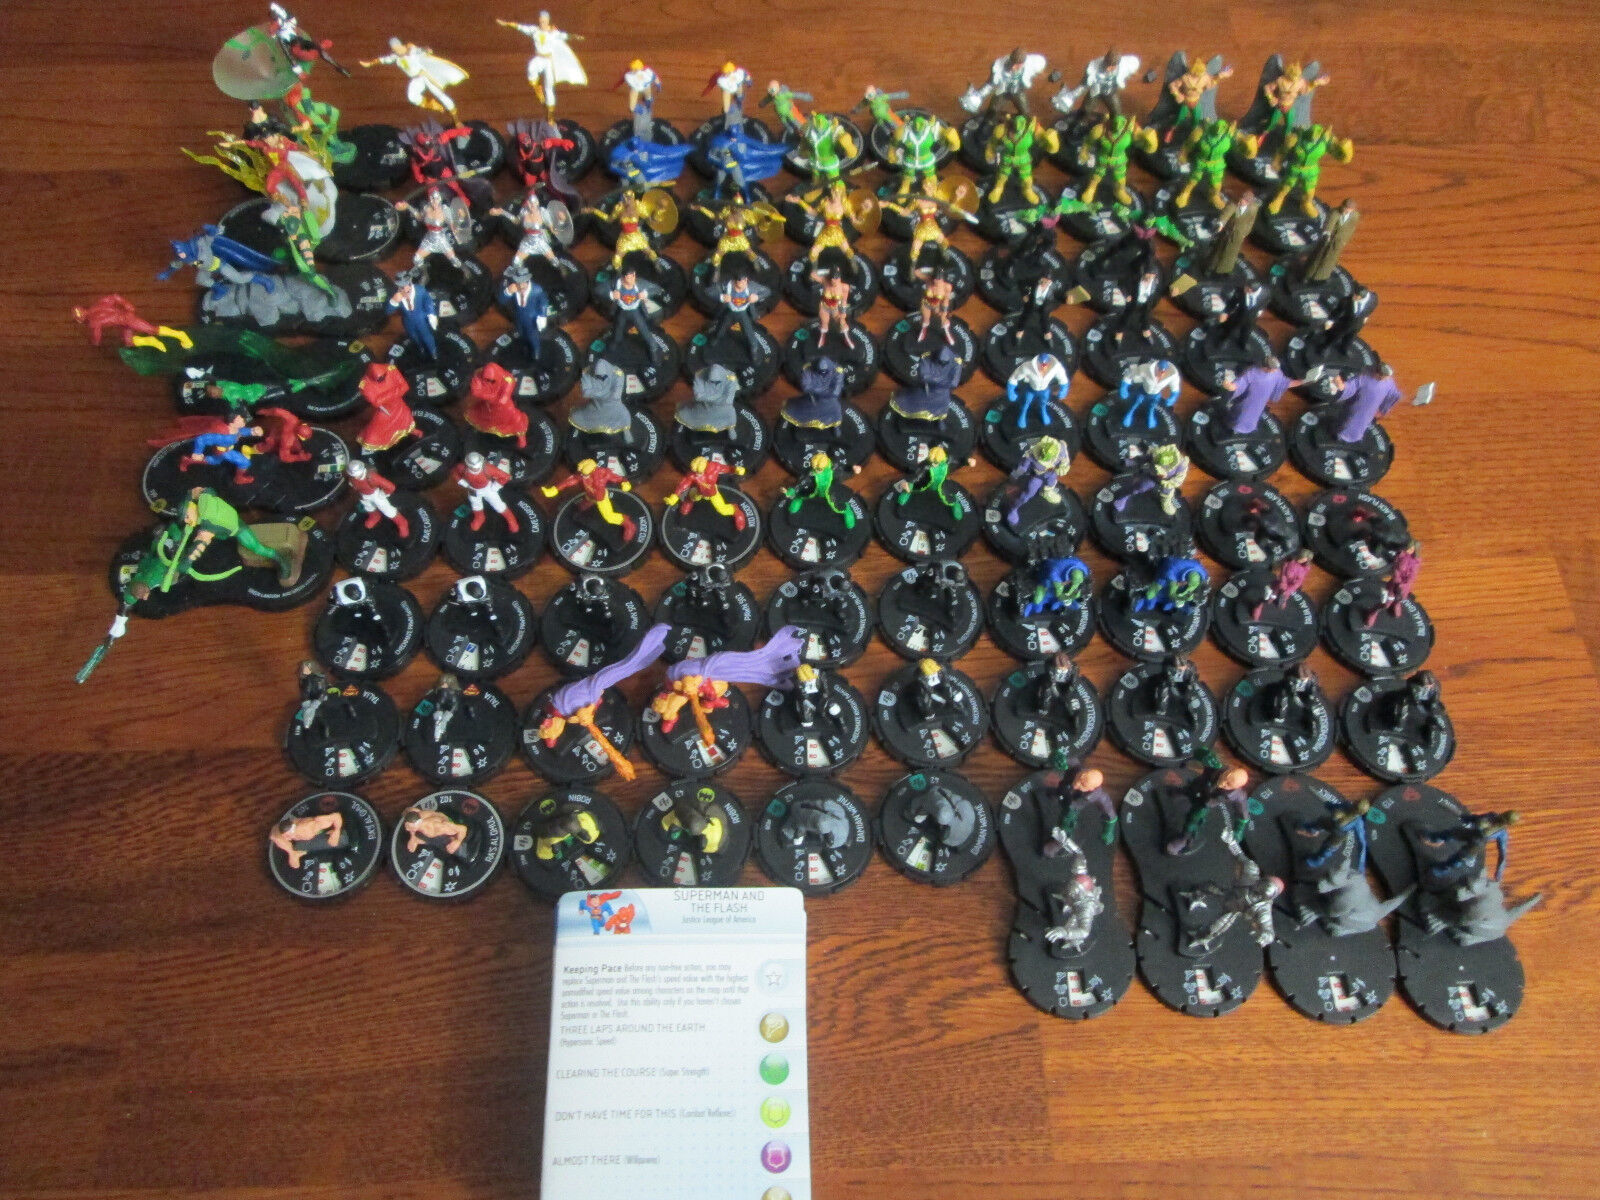 DC HeroClix - Near Complete Brave and the Bold Set With Extras